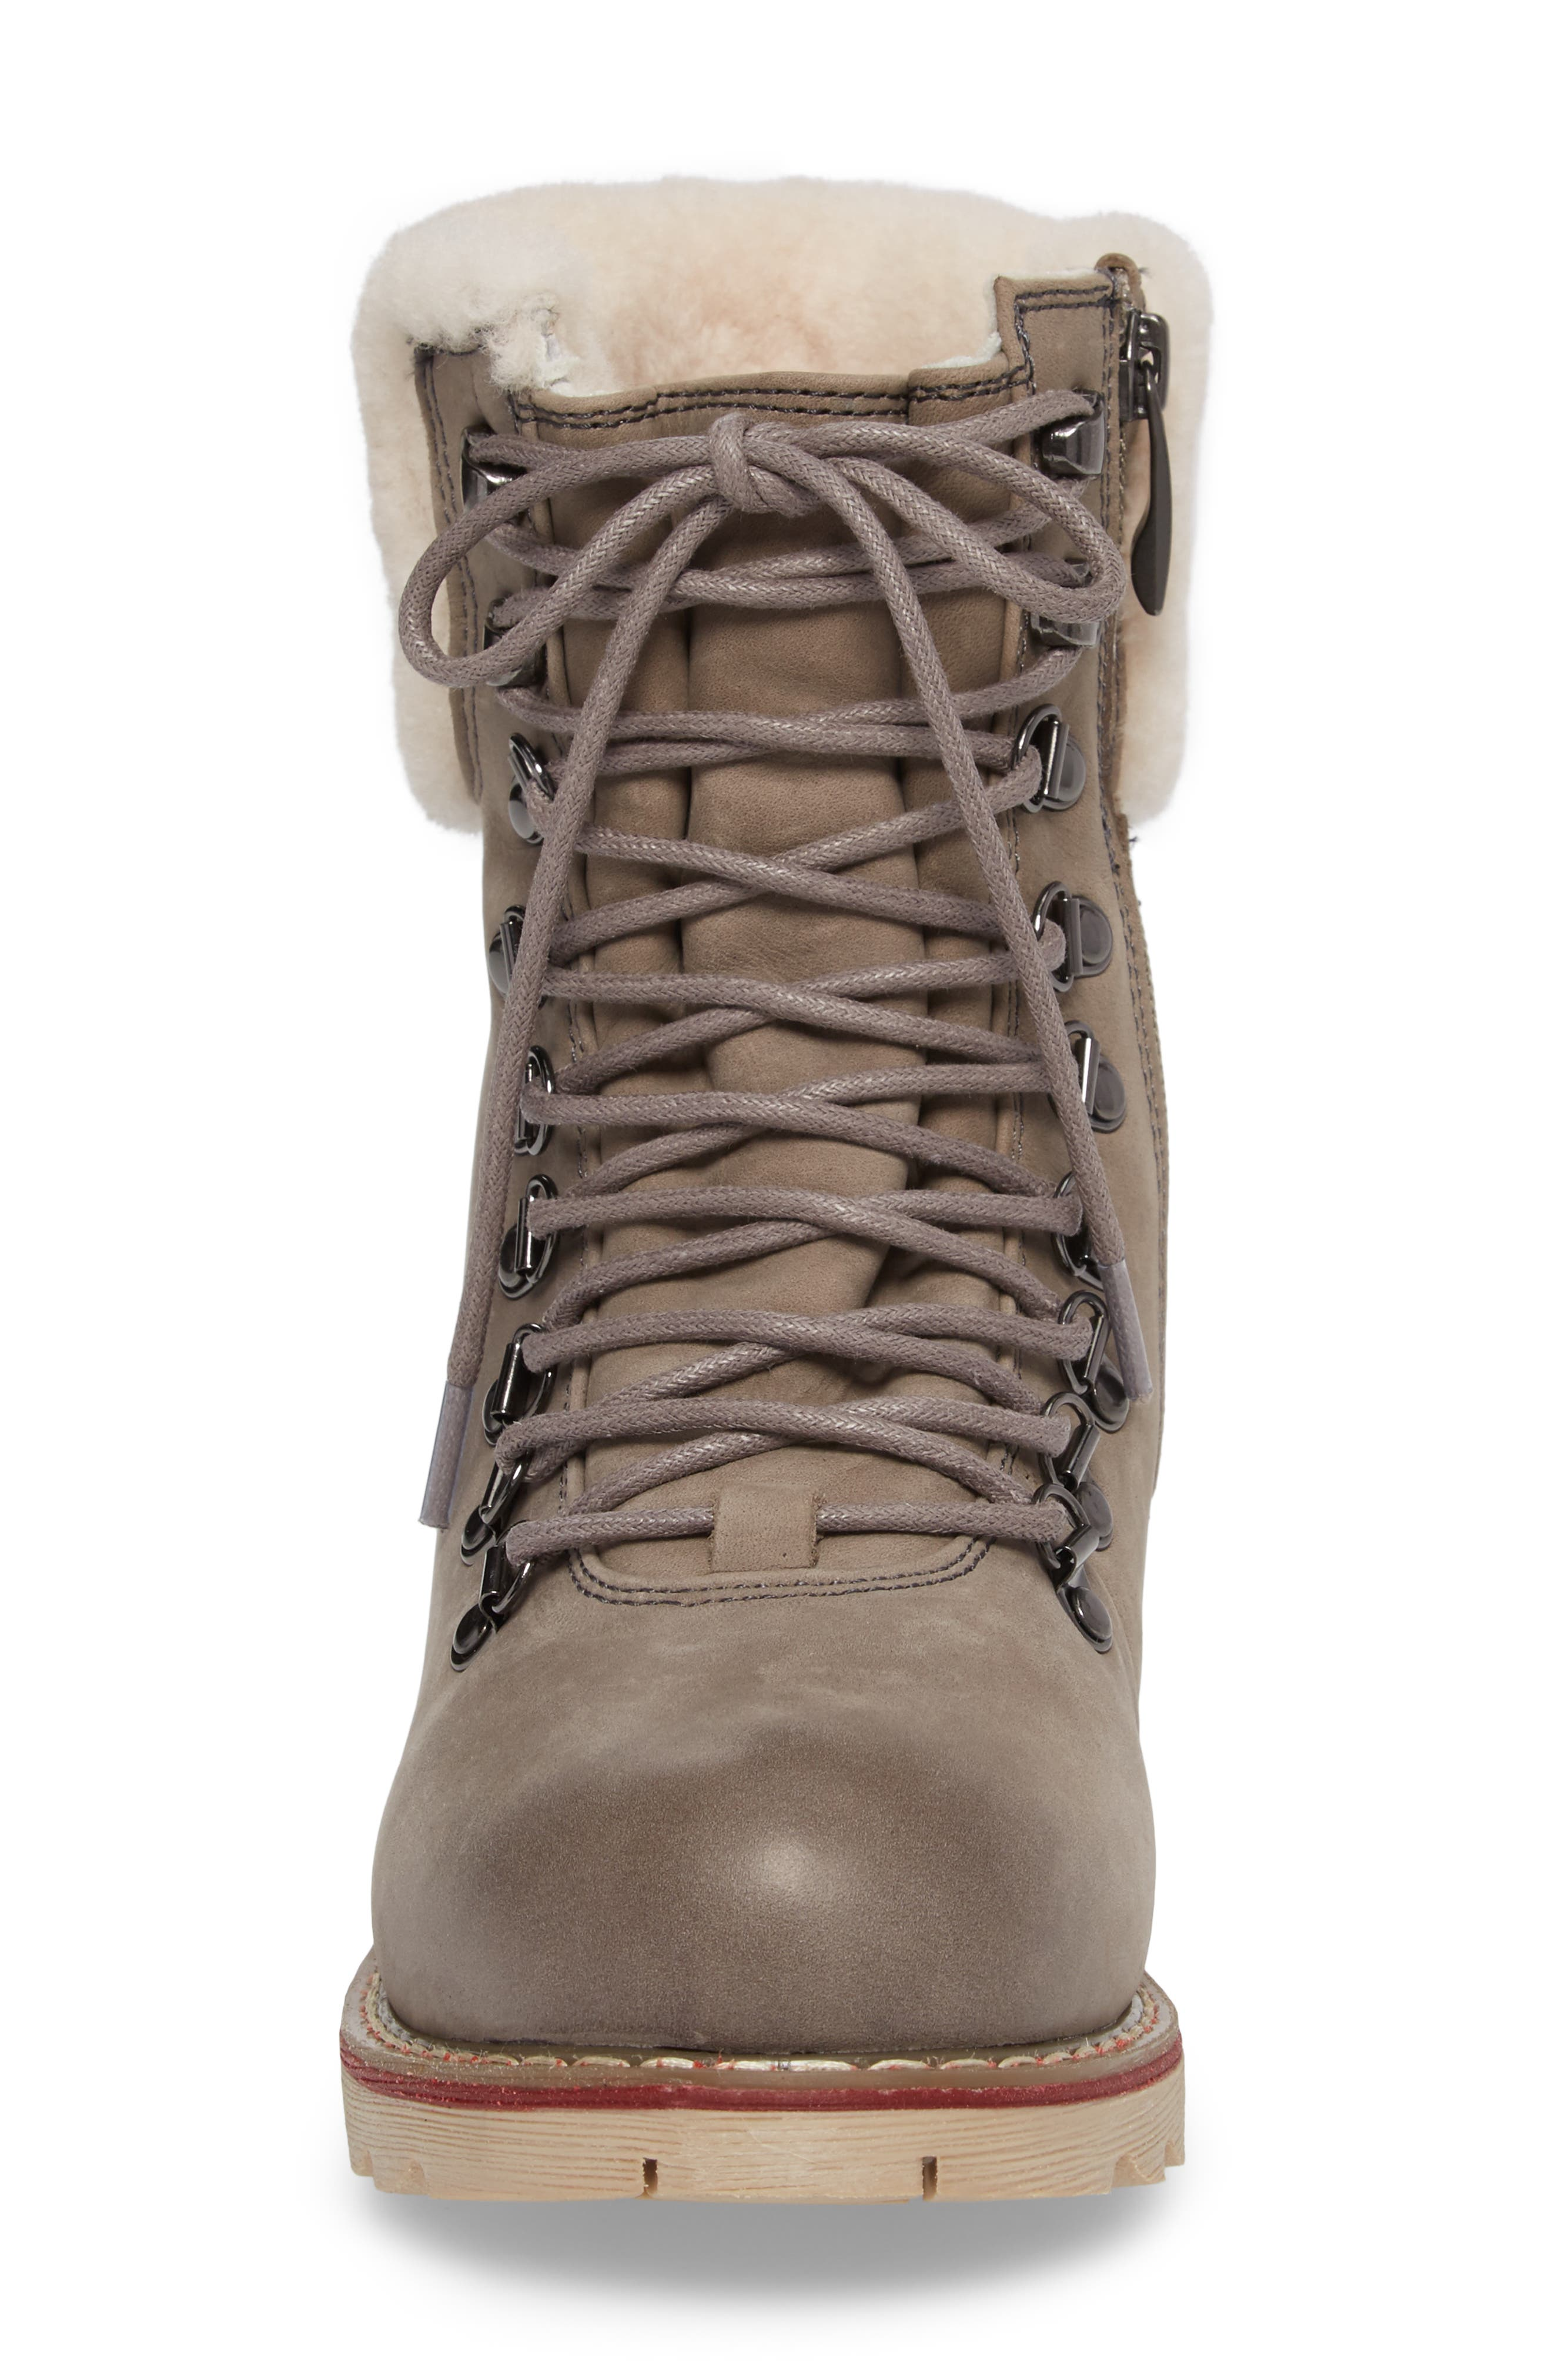 Lethbridge Waterproof Snow Boot with Genuine Shearling Cuff,                             Alternate thumbnail 4, color,                             Grey Leather